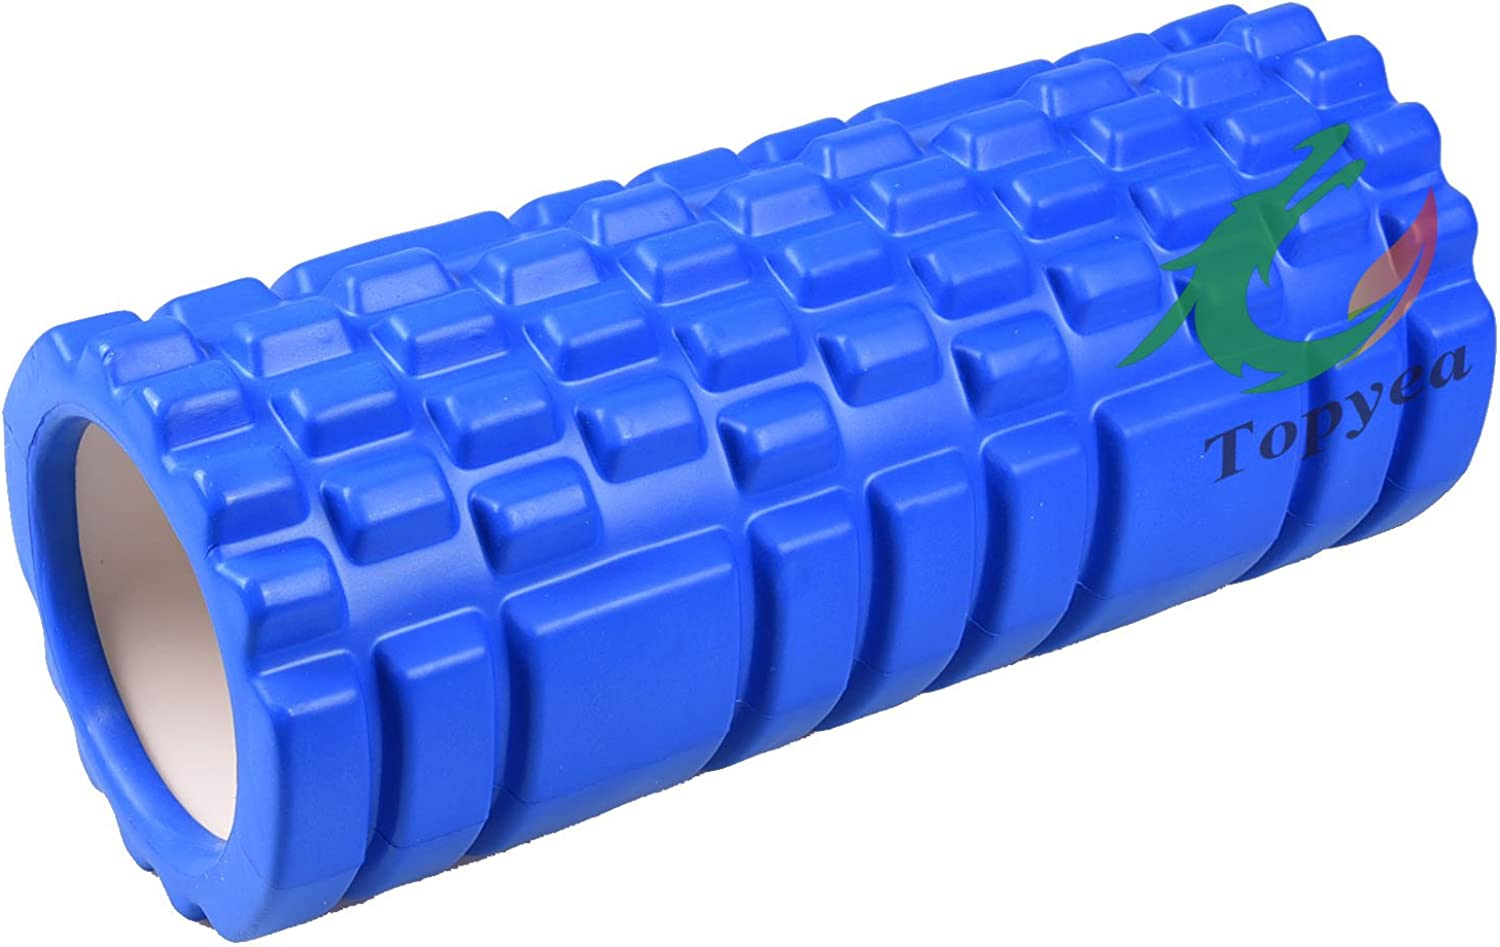 Yoga Roller, Fitness EVA Yoga Roller,Hollow Exercise Yoga Foam Roller for Physiotherapy Massage Pilates Tight Muscles